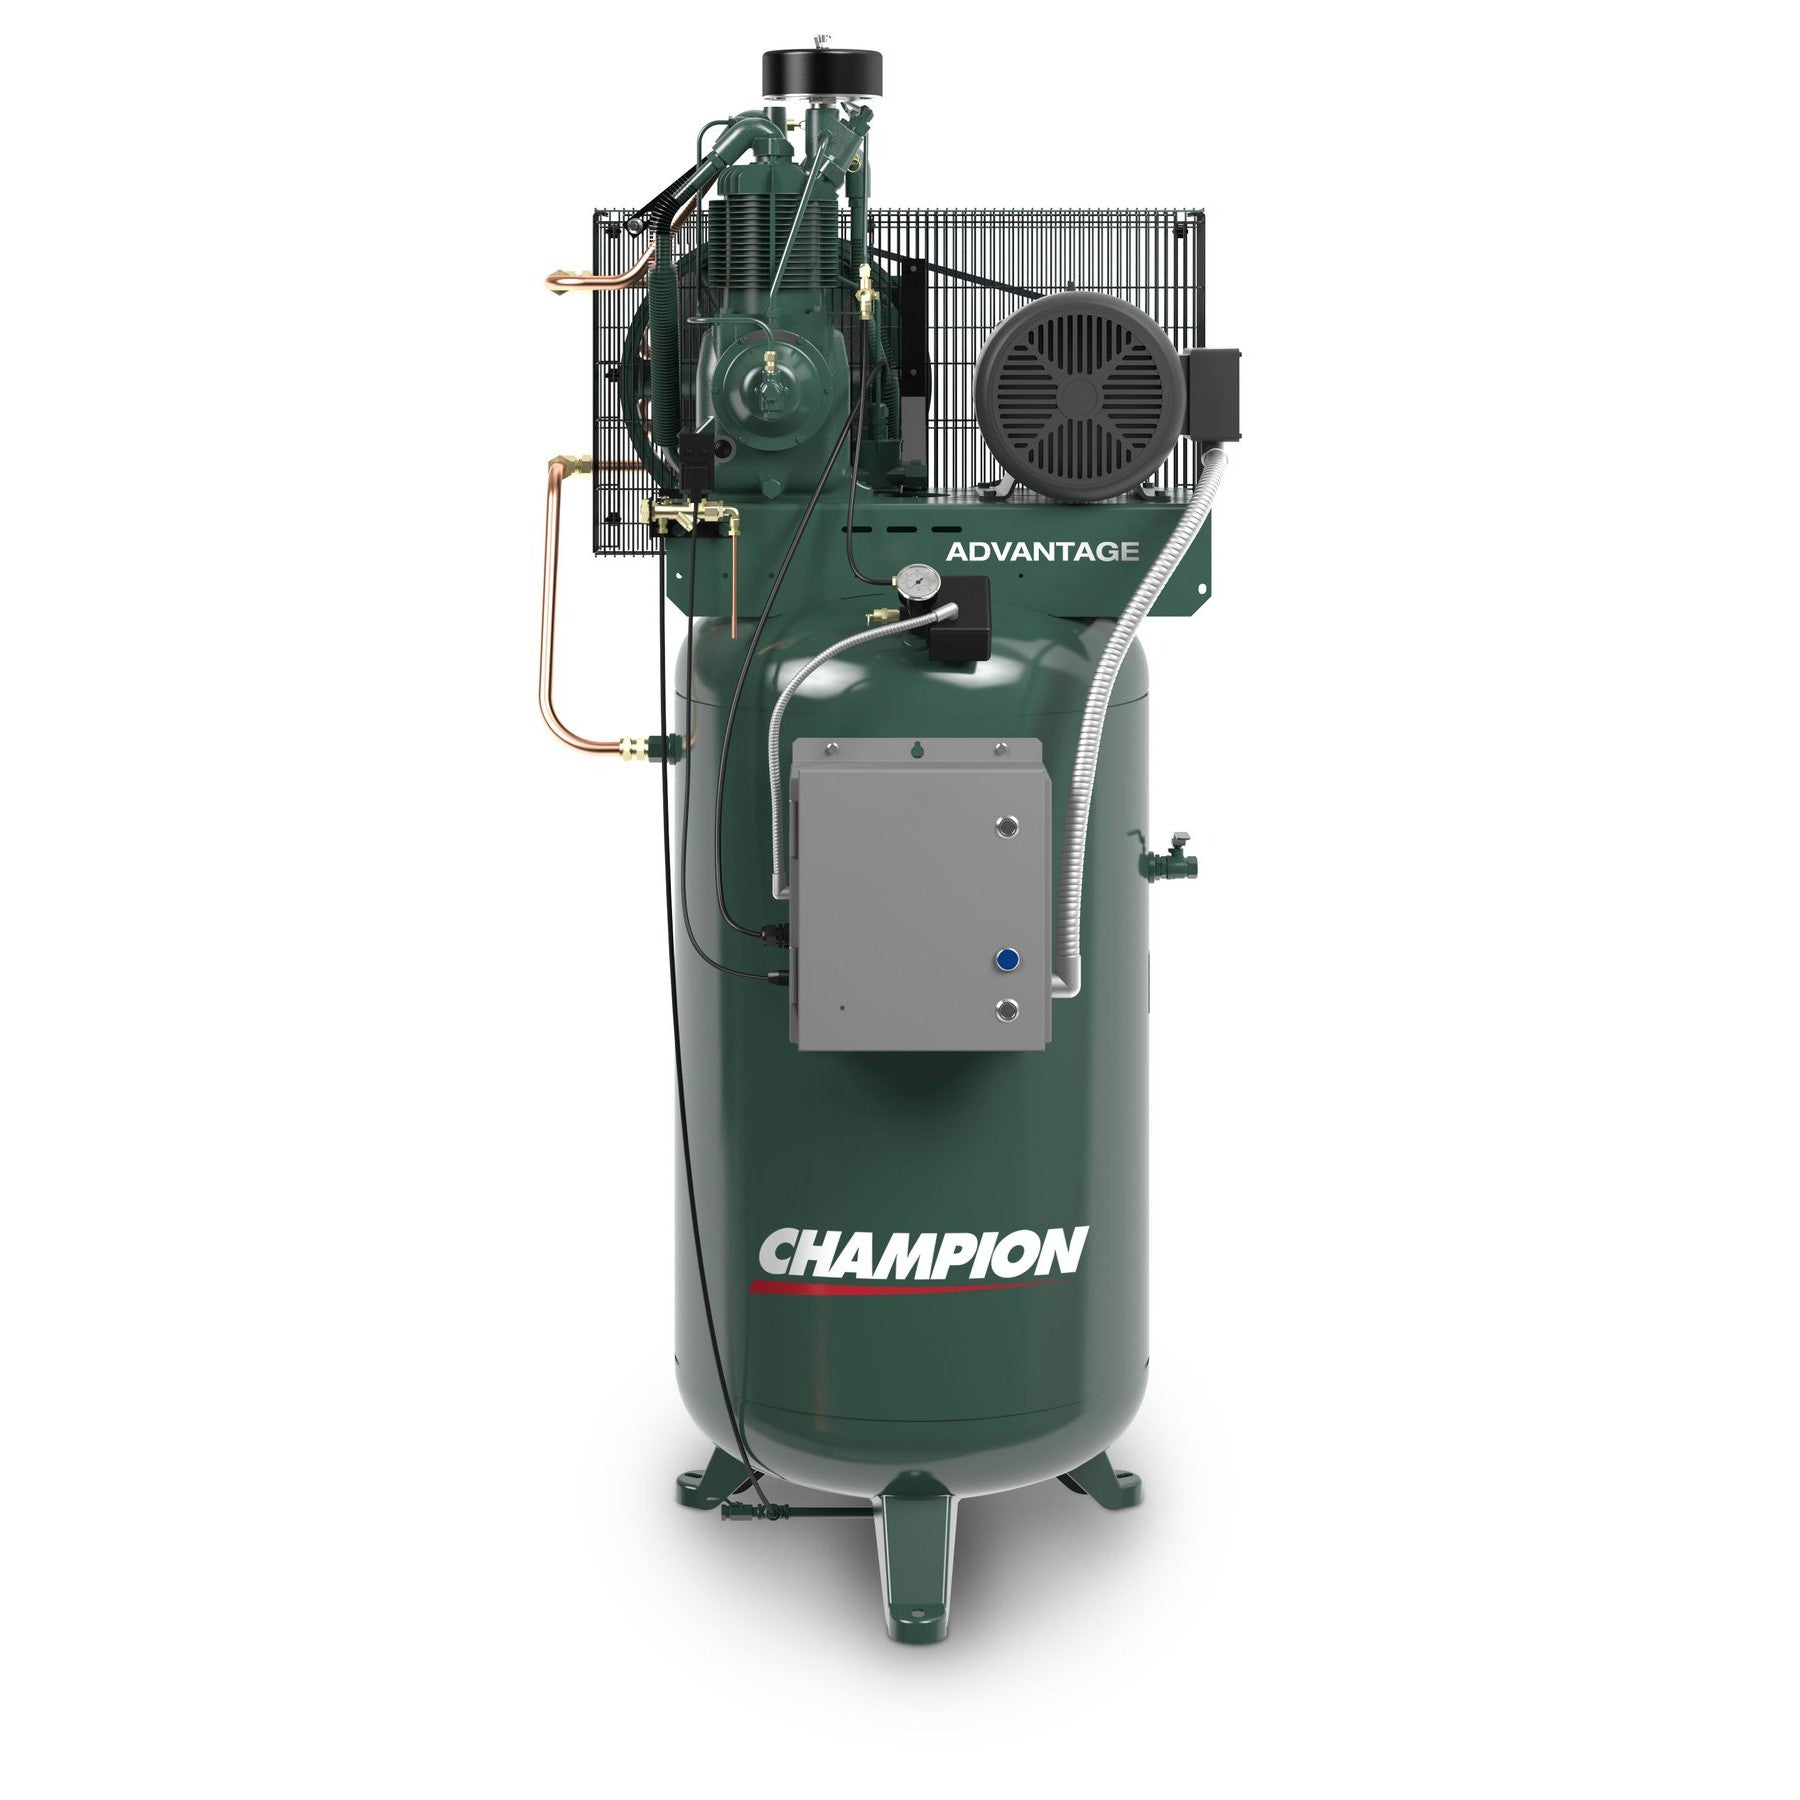 Champion VR7F-8 Air Compressor Fully Equipped (230V, 3PH, 7.5HP, 80GL)